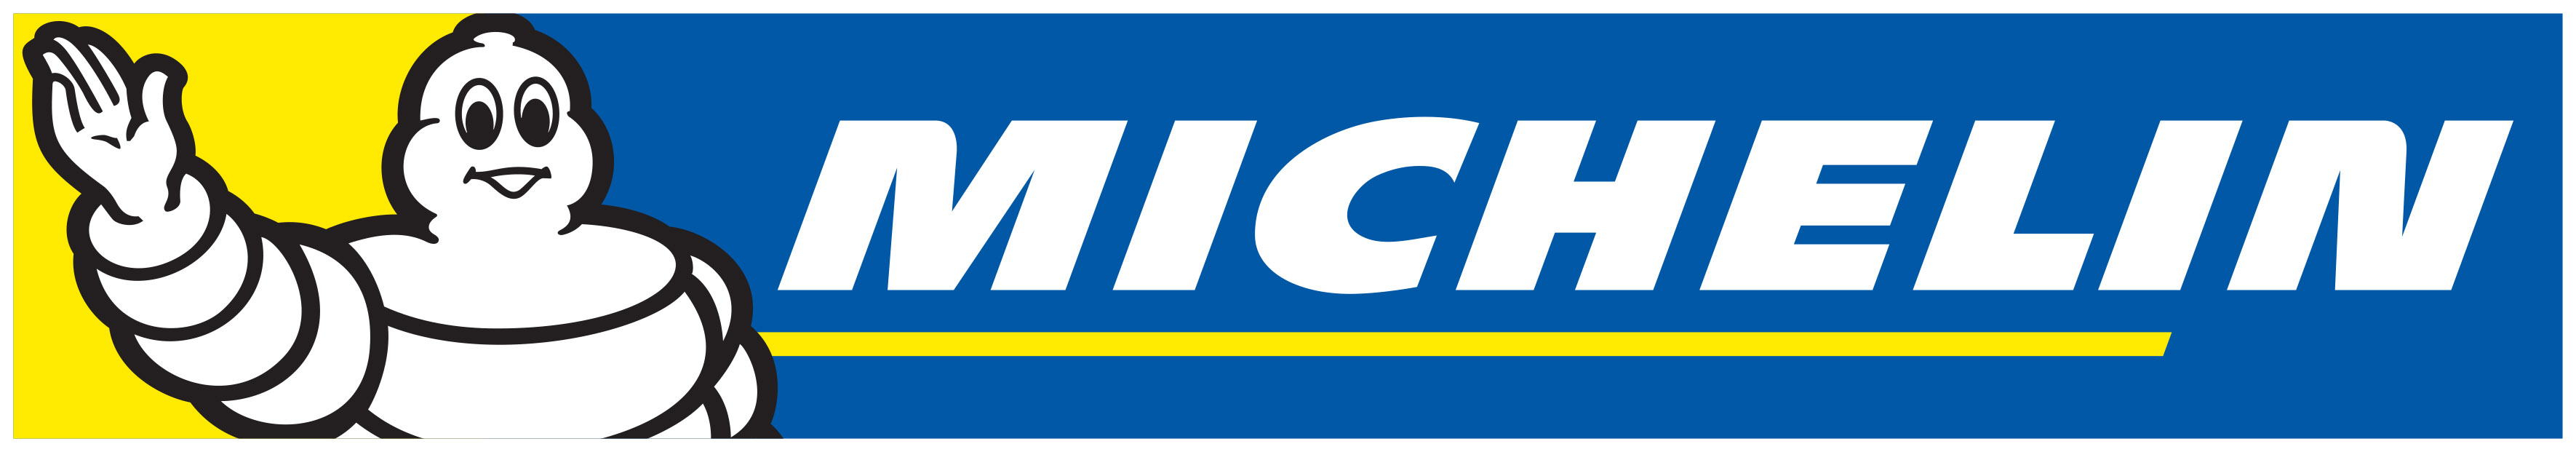 Michelin Tires Logo Vector PNG - 110777